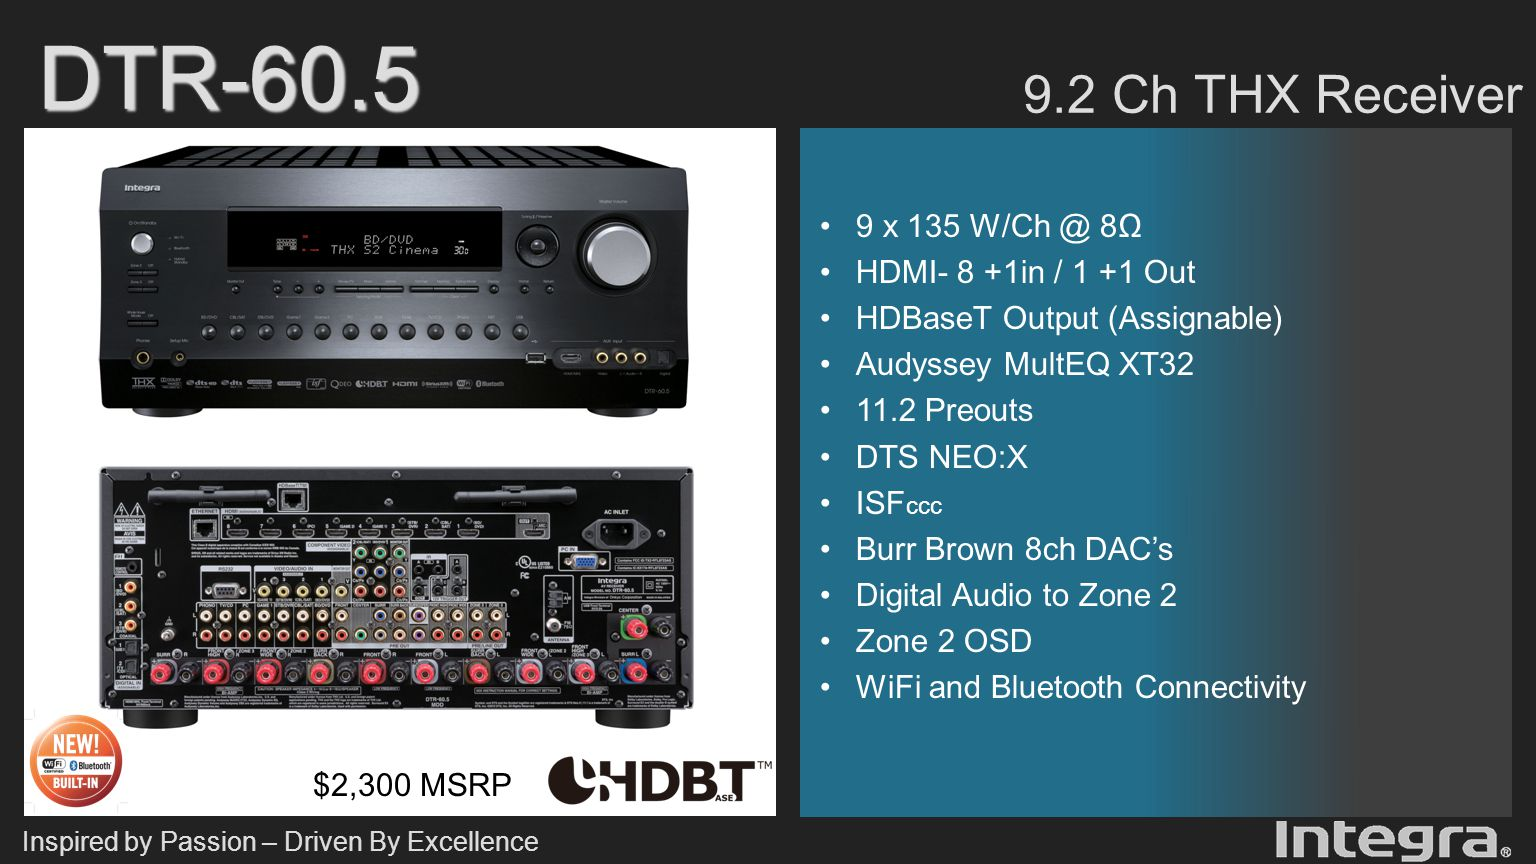 Inspired by Passion – Driven By Excellence DHC-60.5 7.2 Ch THX Ultra2 Preamp $2,000 MSRP HDMI v1.4a- 8 +1in / 1 +1 Out Balanced Outputs 2 Ch Balanced Input HDBaseT Output (Main or Zone 2) Audyssey MultEQ XT32 DTS NEO:X ISF ccc Burr Brown 8ch DAC's Digital Audio to Zone 2 (HDMI) Zone 2 OSD WiFi, Bluetooth